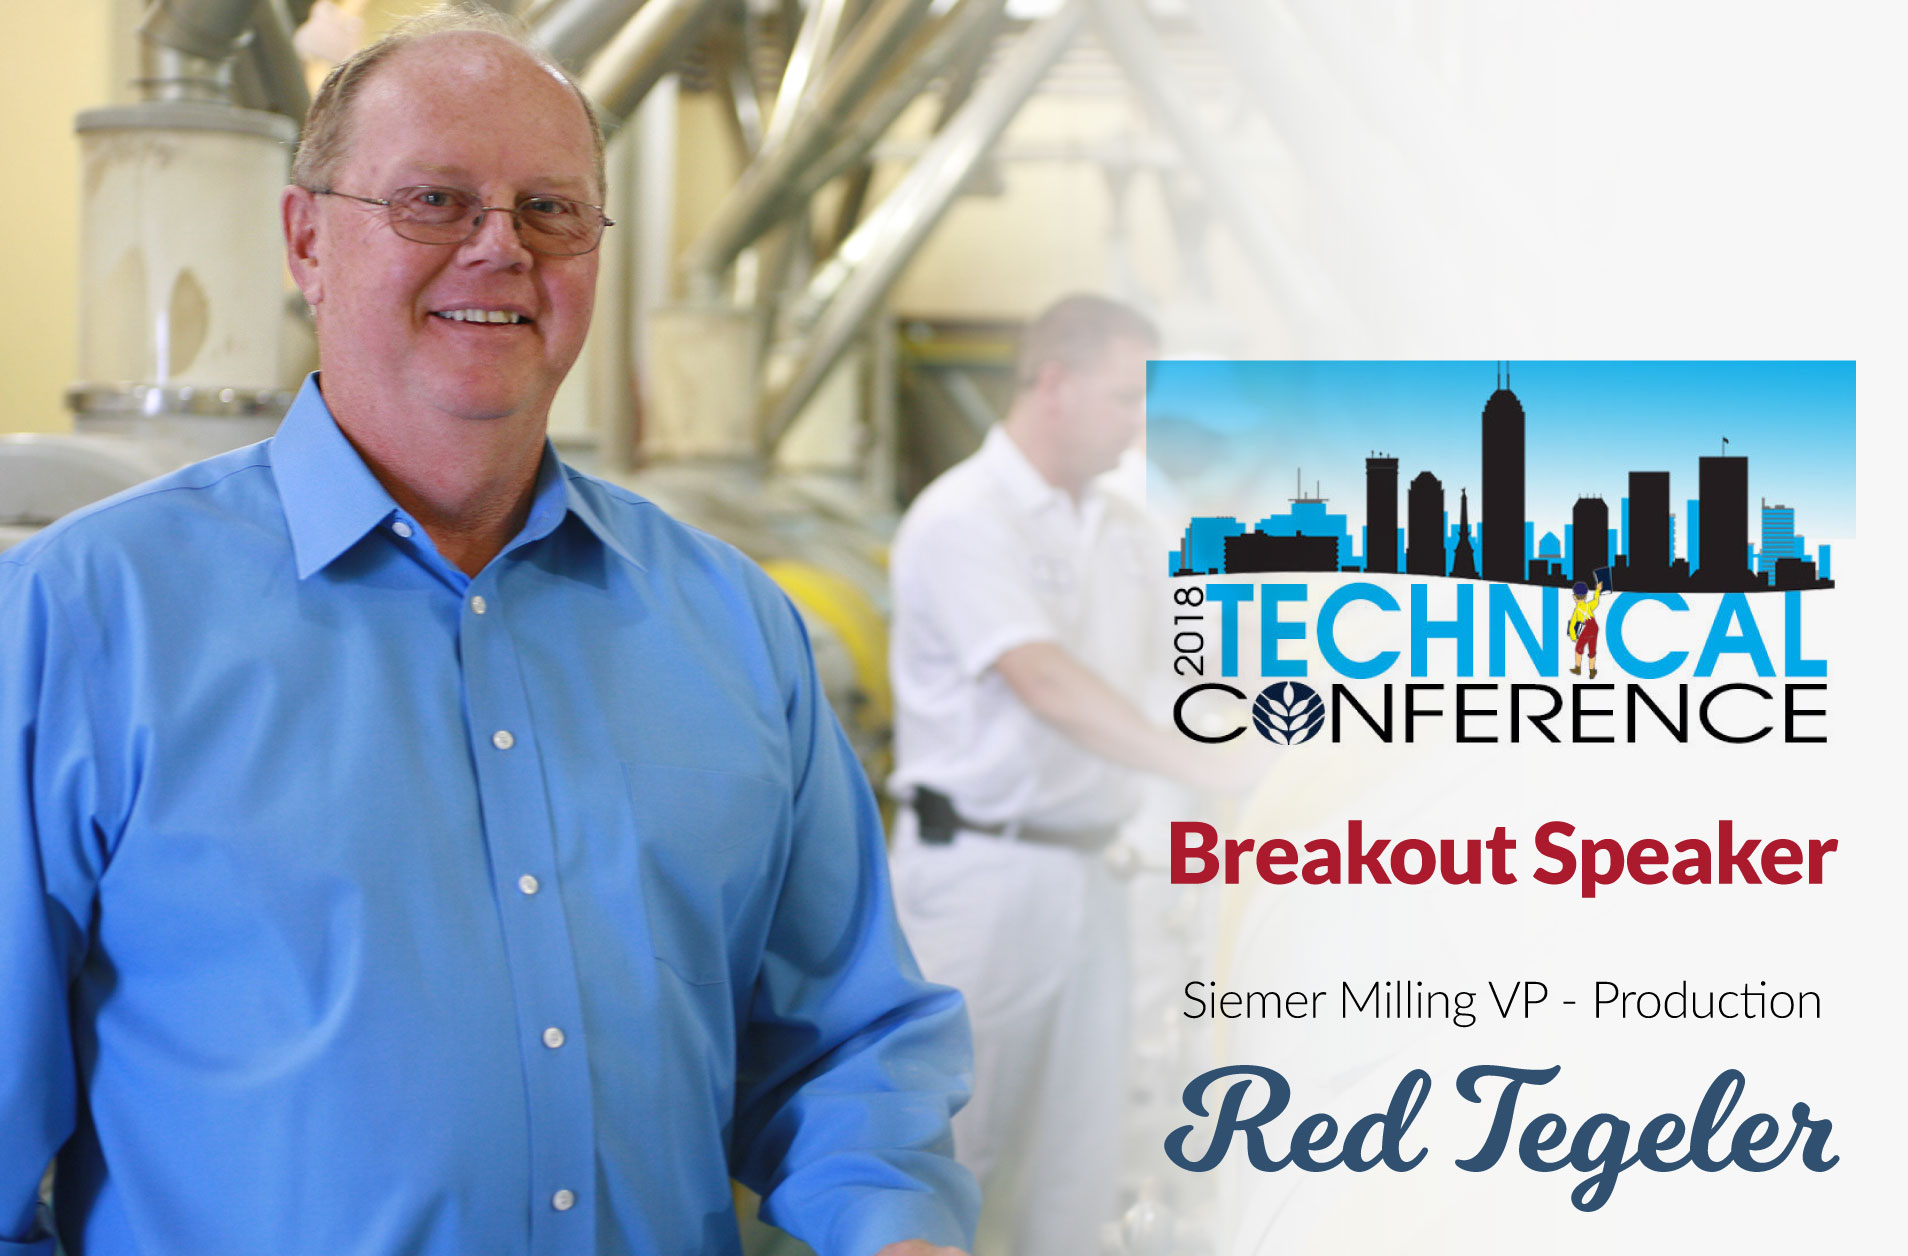 Siemer Milling's Red Tegeler to be Breakout Speaker at ABA Technical Conference